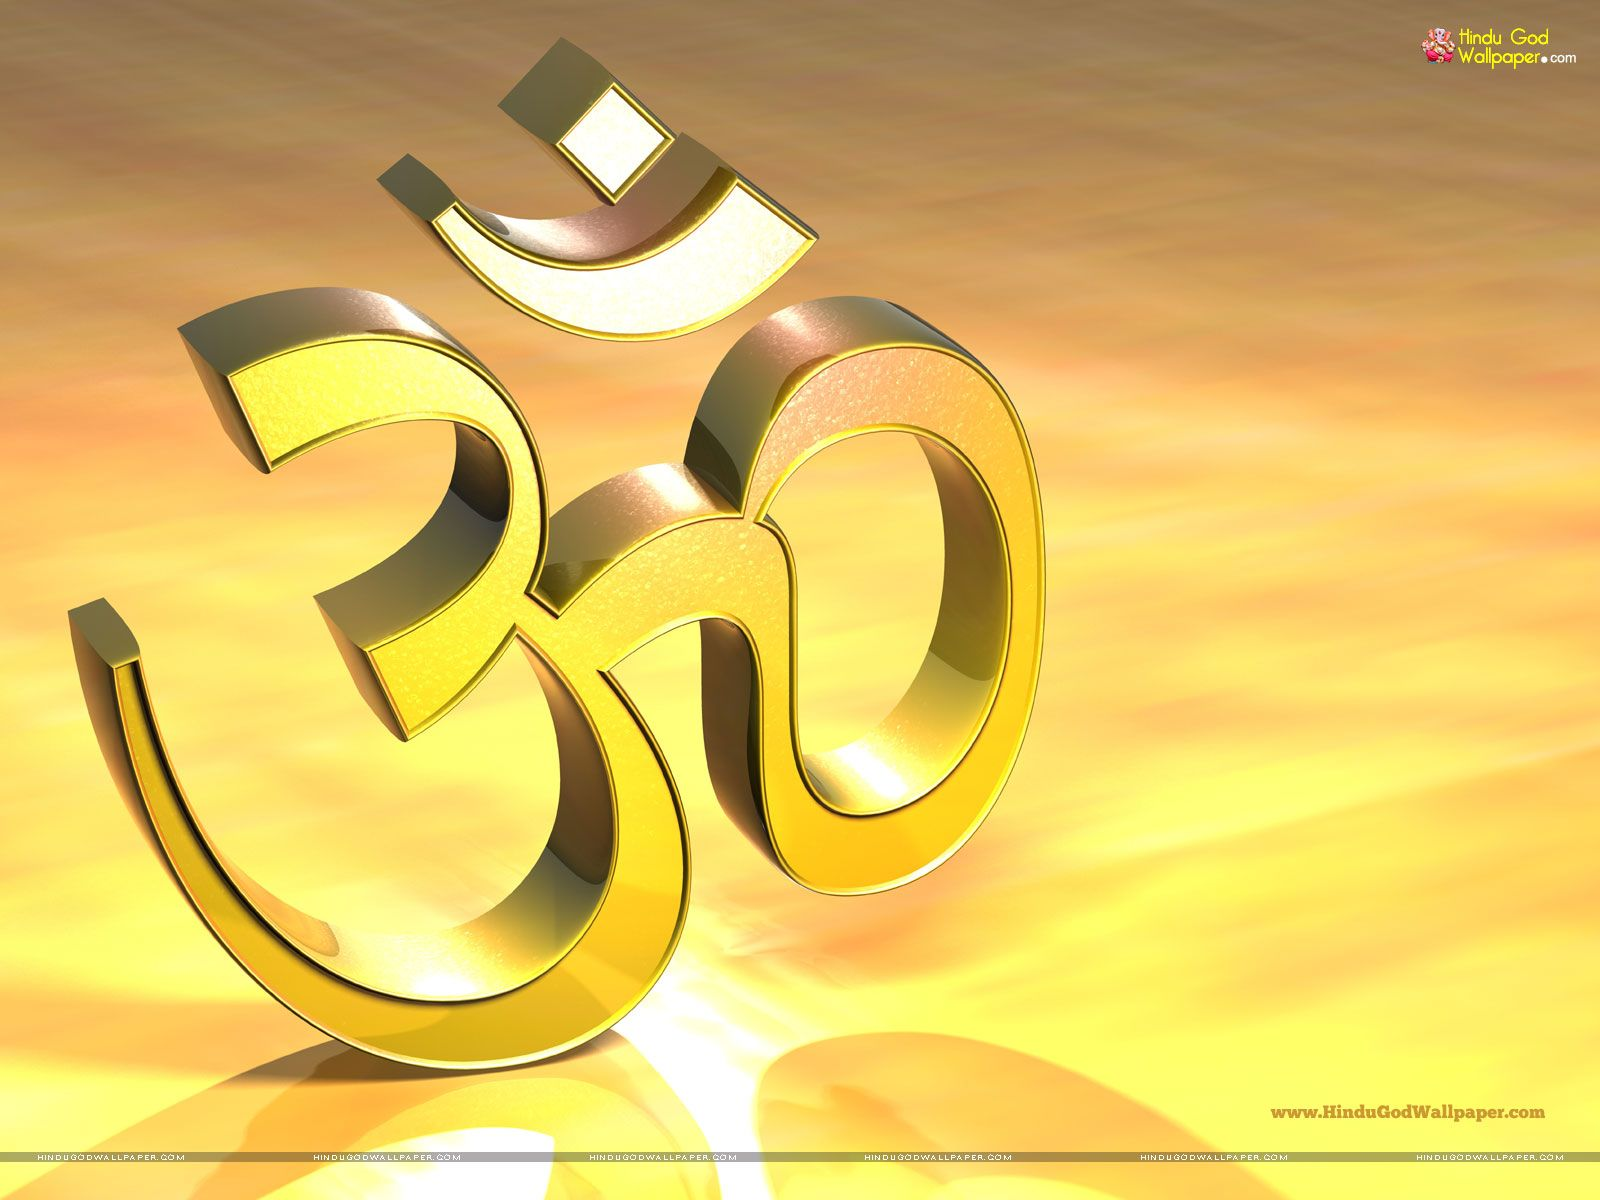 3d om wallpaper free download om wallpapers pinterest Om symbol images download